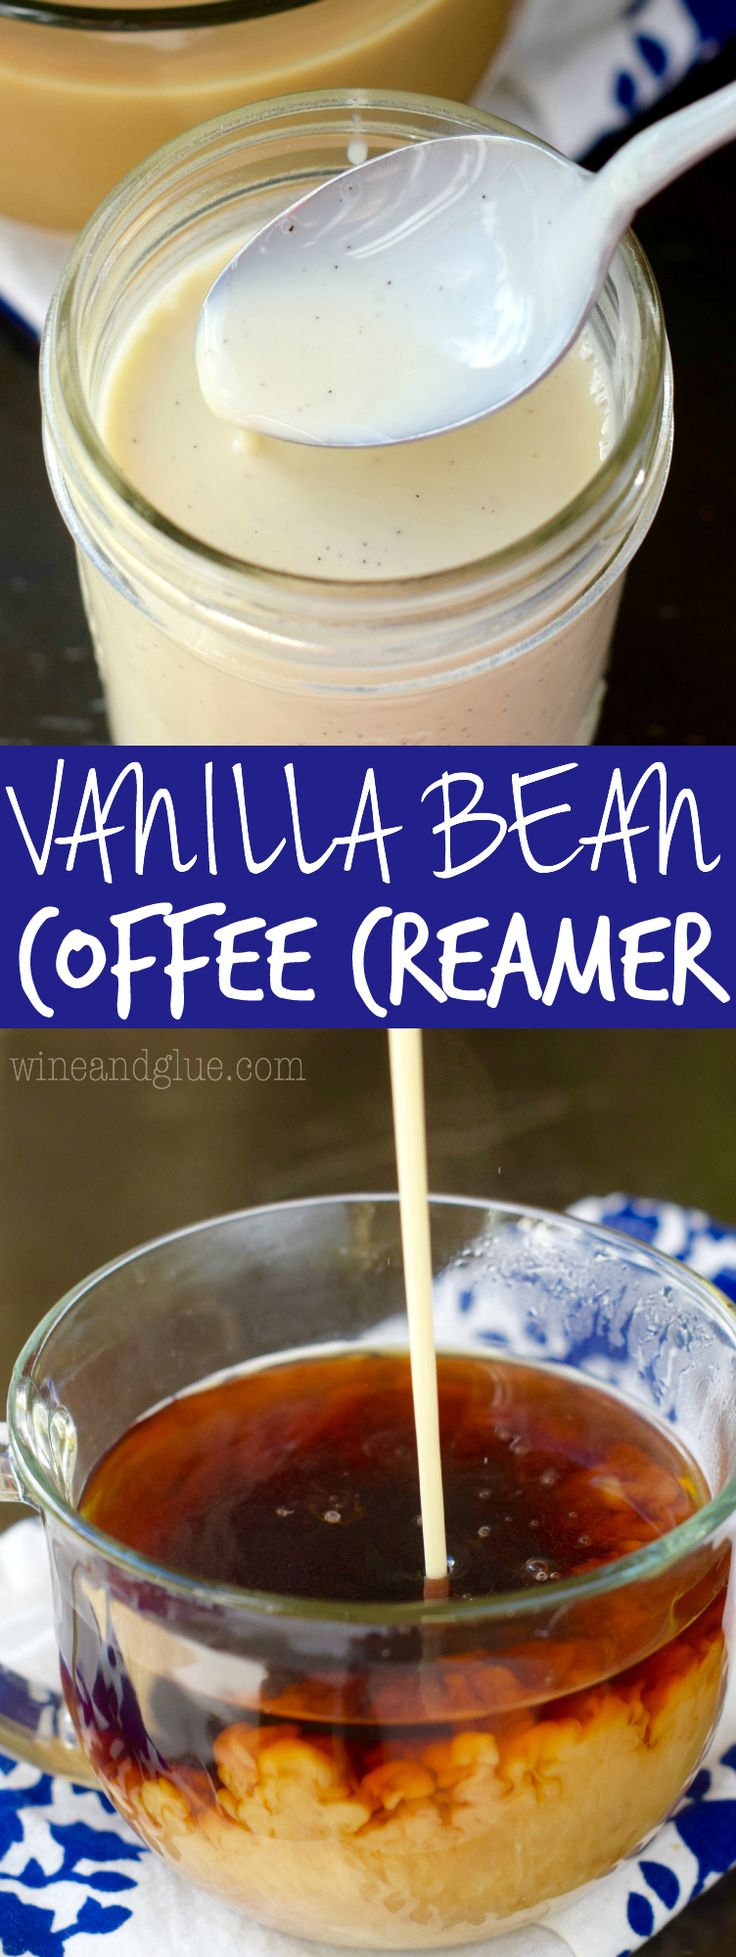 This Vanilla Bean Coffee Creamer could not be easier to throw together, but it is such a fun treat for your morning coffee.